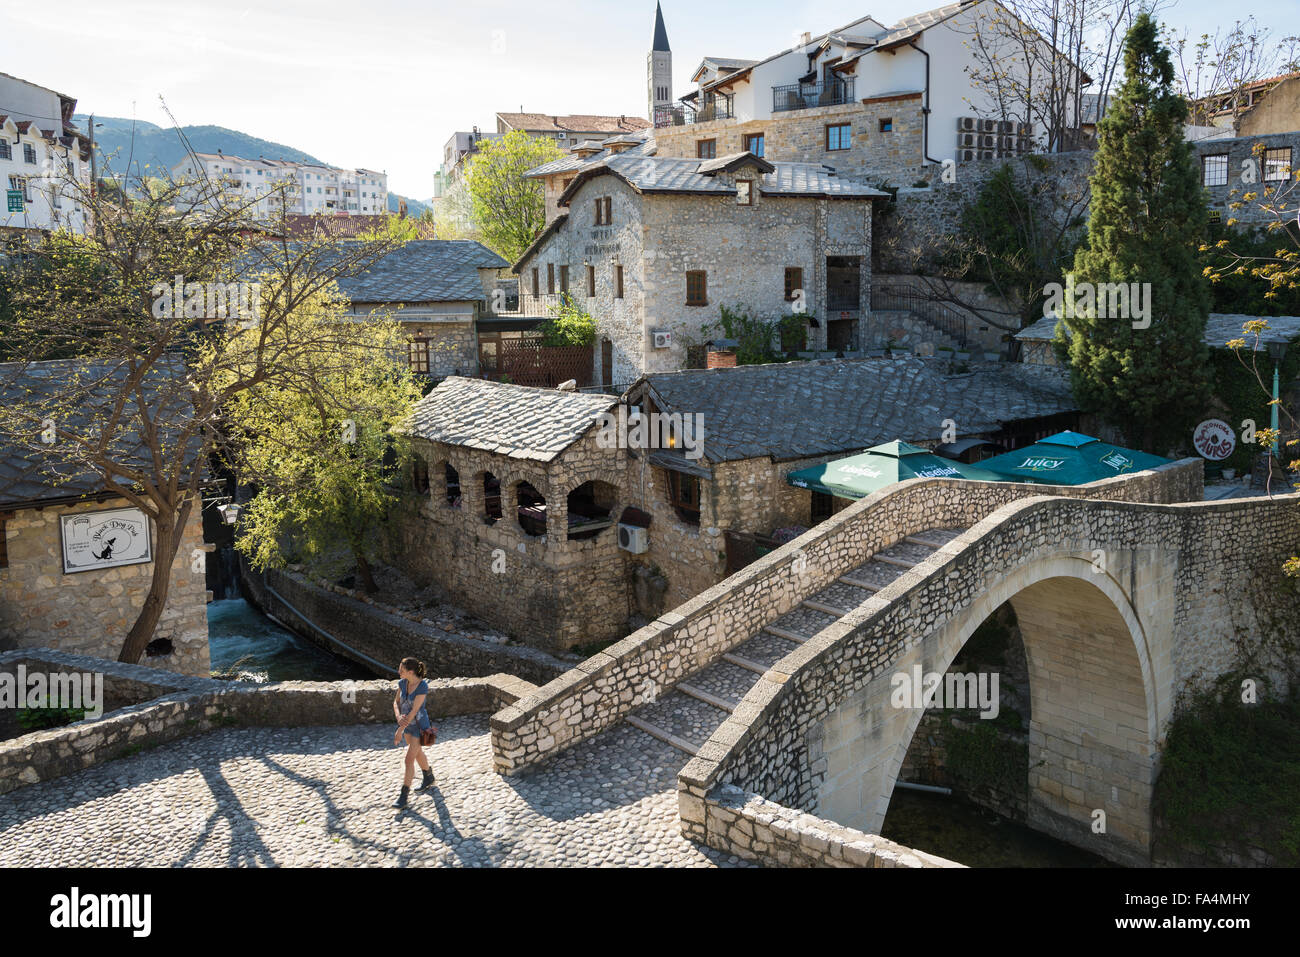 A young woman walks near an old bridge on April 15, 2015 in Mostar, Bosnia and Herzegovina. - Stock Image